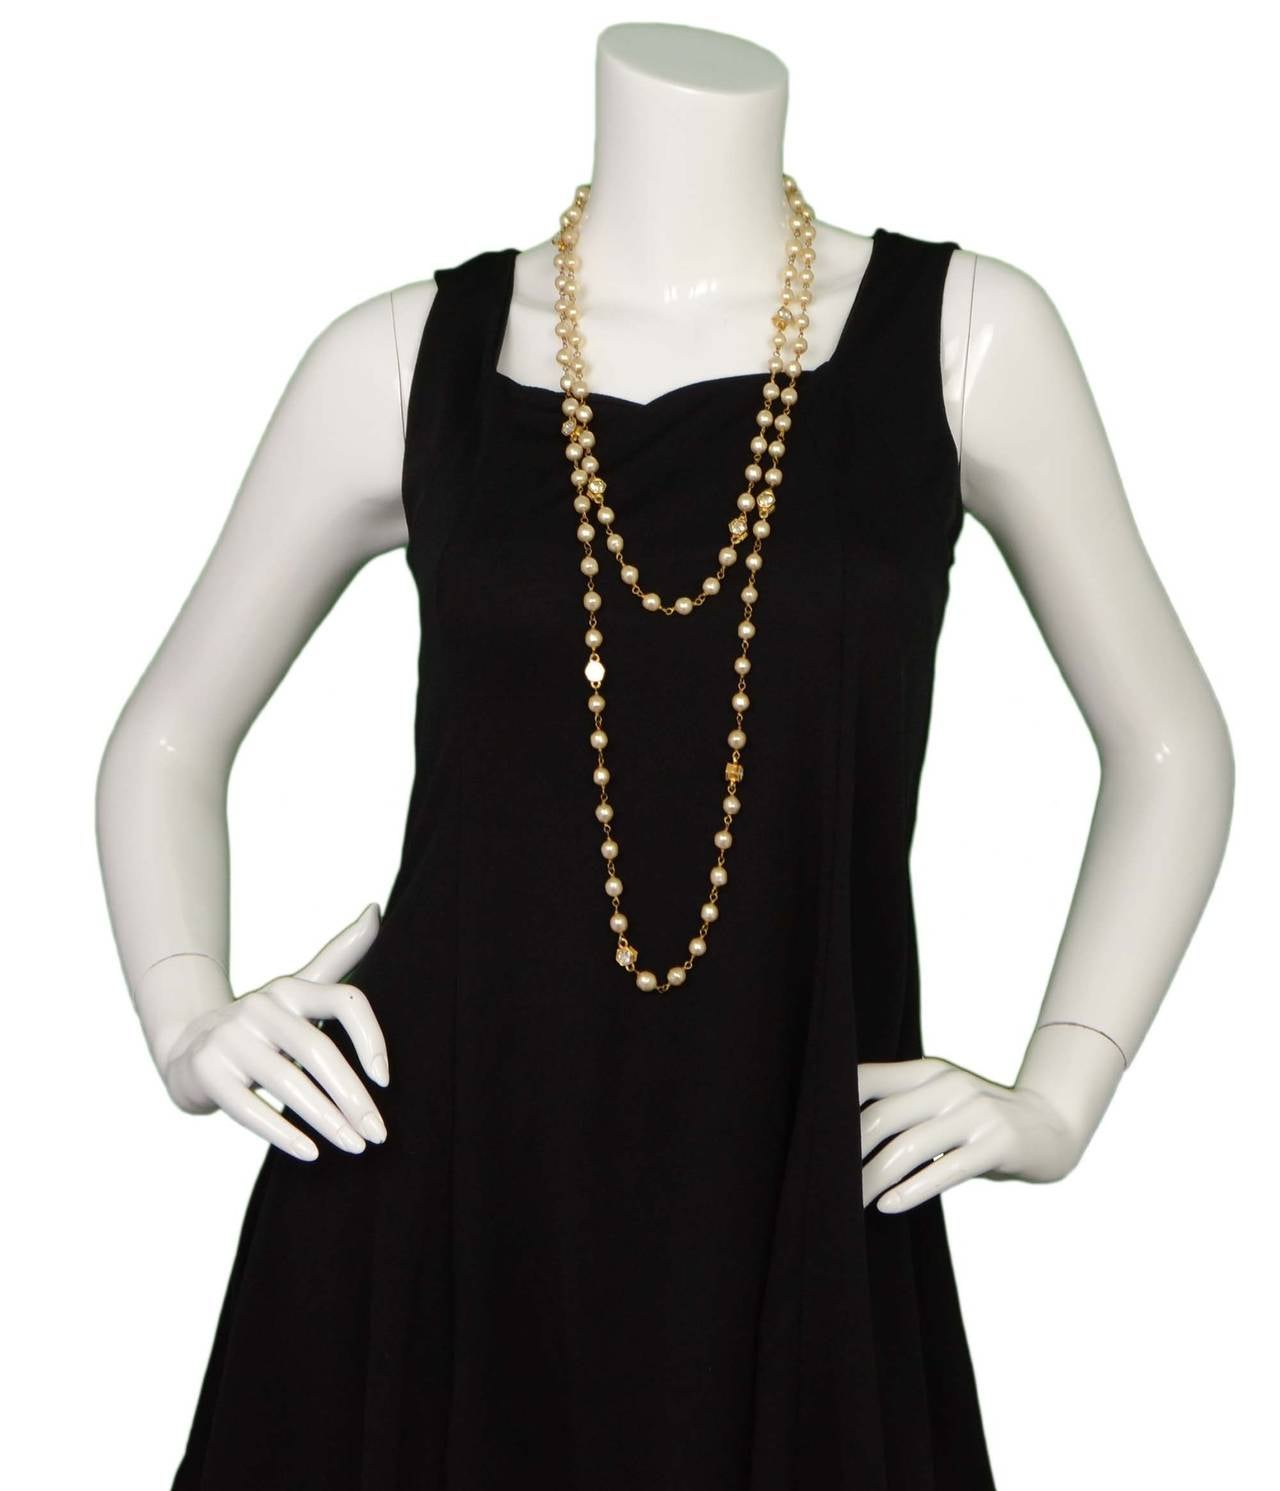 CHANEL Vintage 70's-80's Pearl & Hexagonal Crystal Long Necklace 8